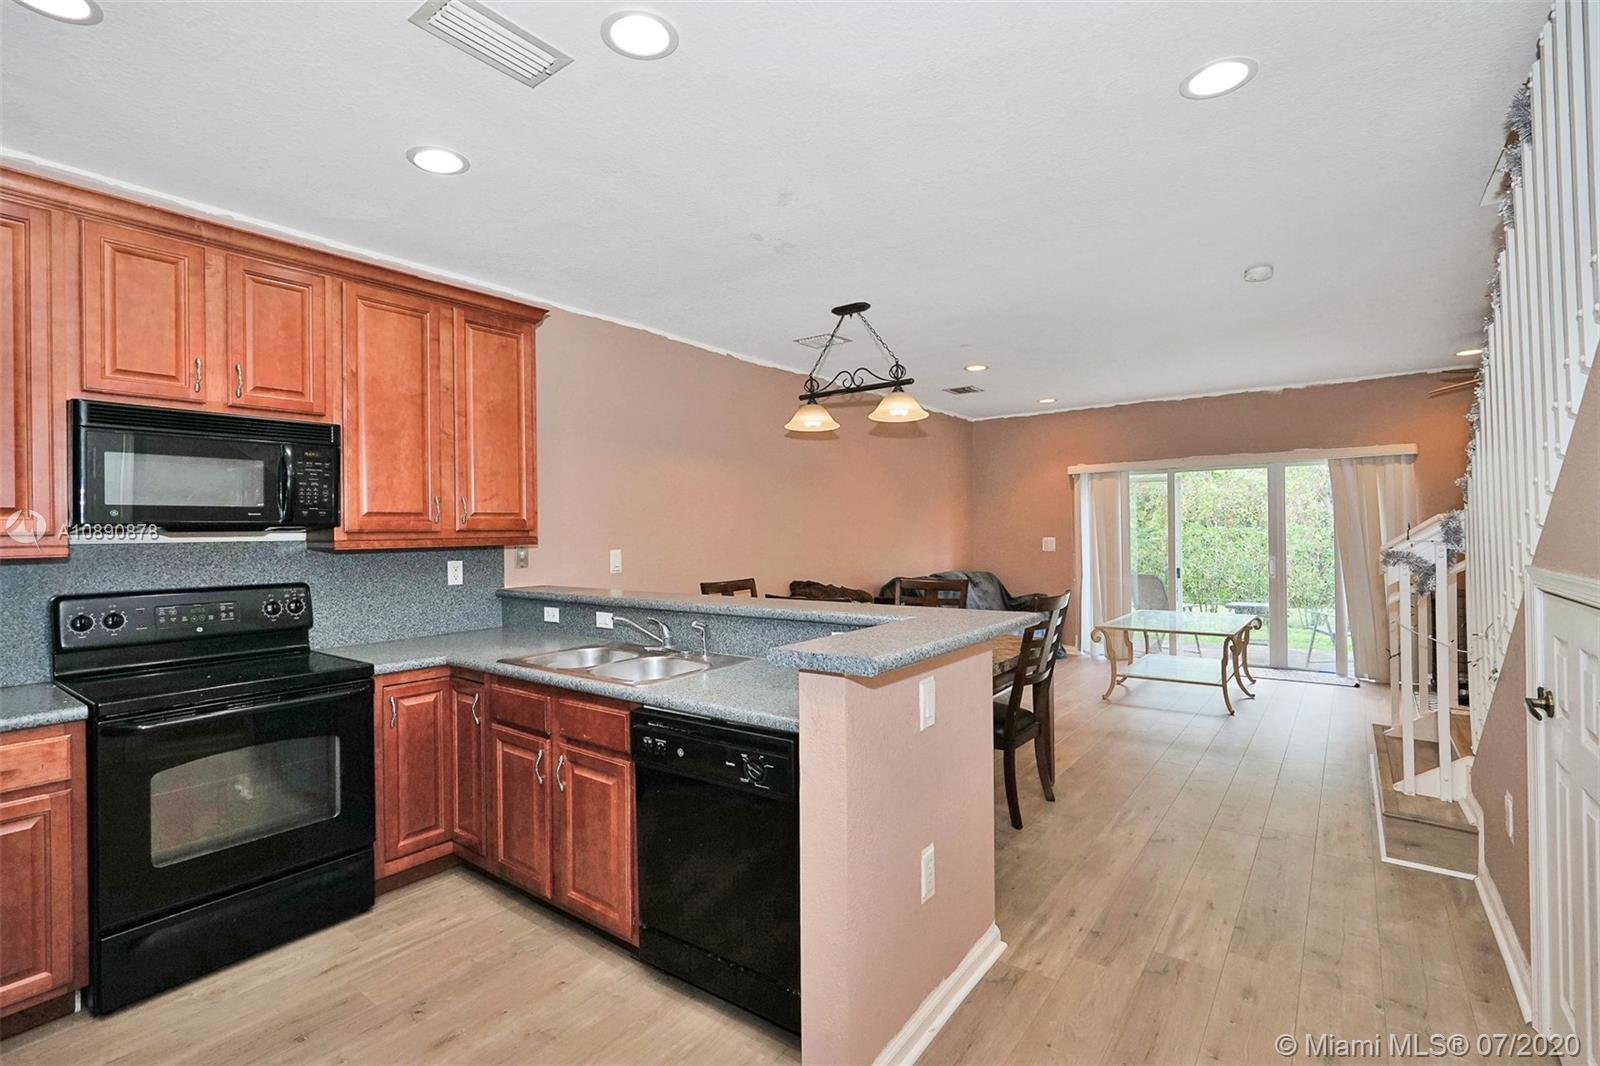 Updated 3bed 2 1/2 bath townhome at The Oaks, a gated community.  Great Location - near 95.  this bright and spacious unit has been painted a soft gray (new photos coming) with wood flooring through out.  Washer and dryer on the second floor.  Nice sitting area on back patio.  Pet friendly (2 pets max).